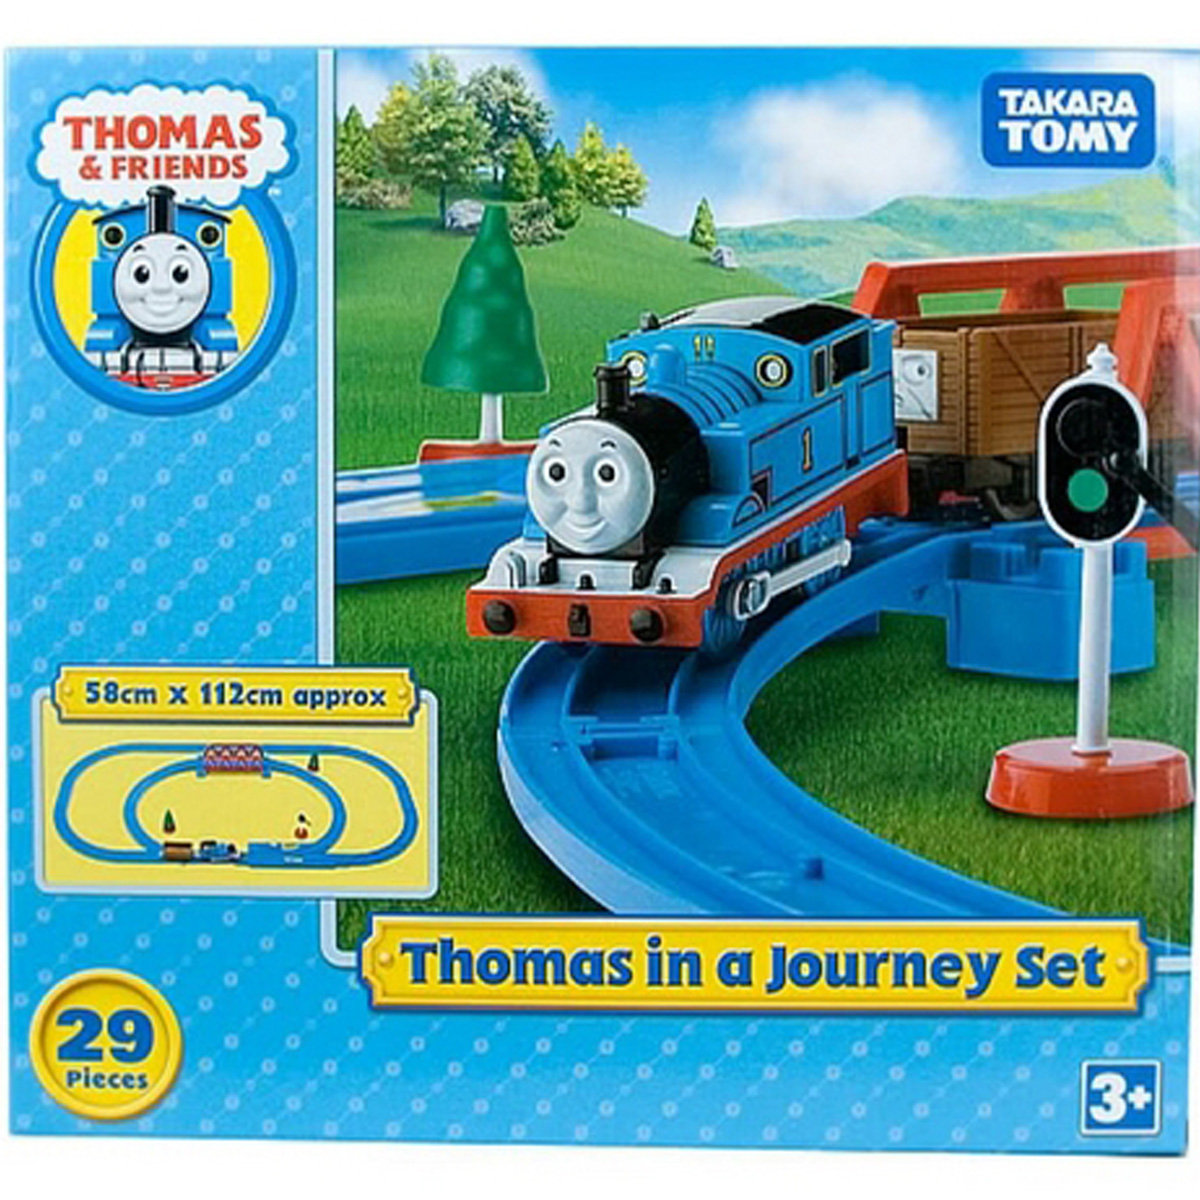 Bo mo hinh xe lua Thomas 354567 thomas in a Journey Set